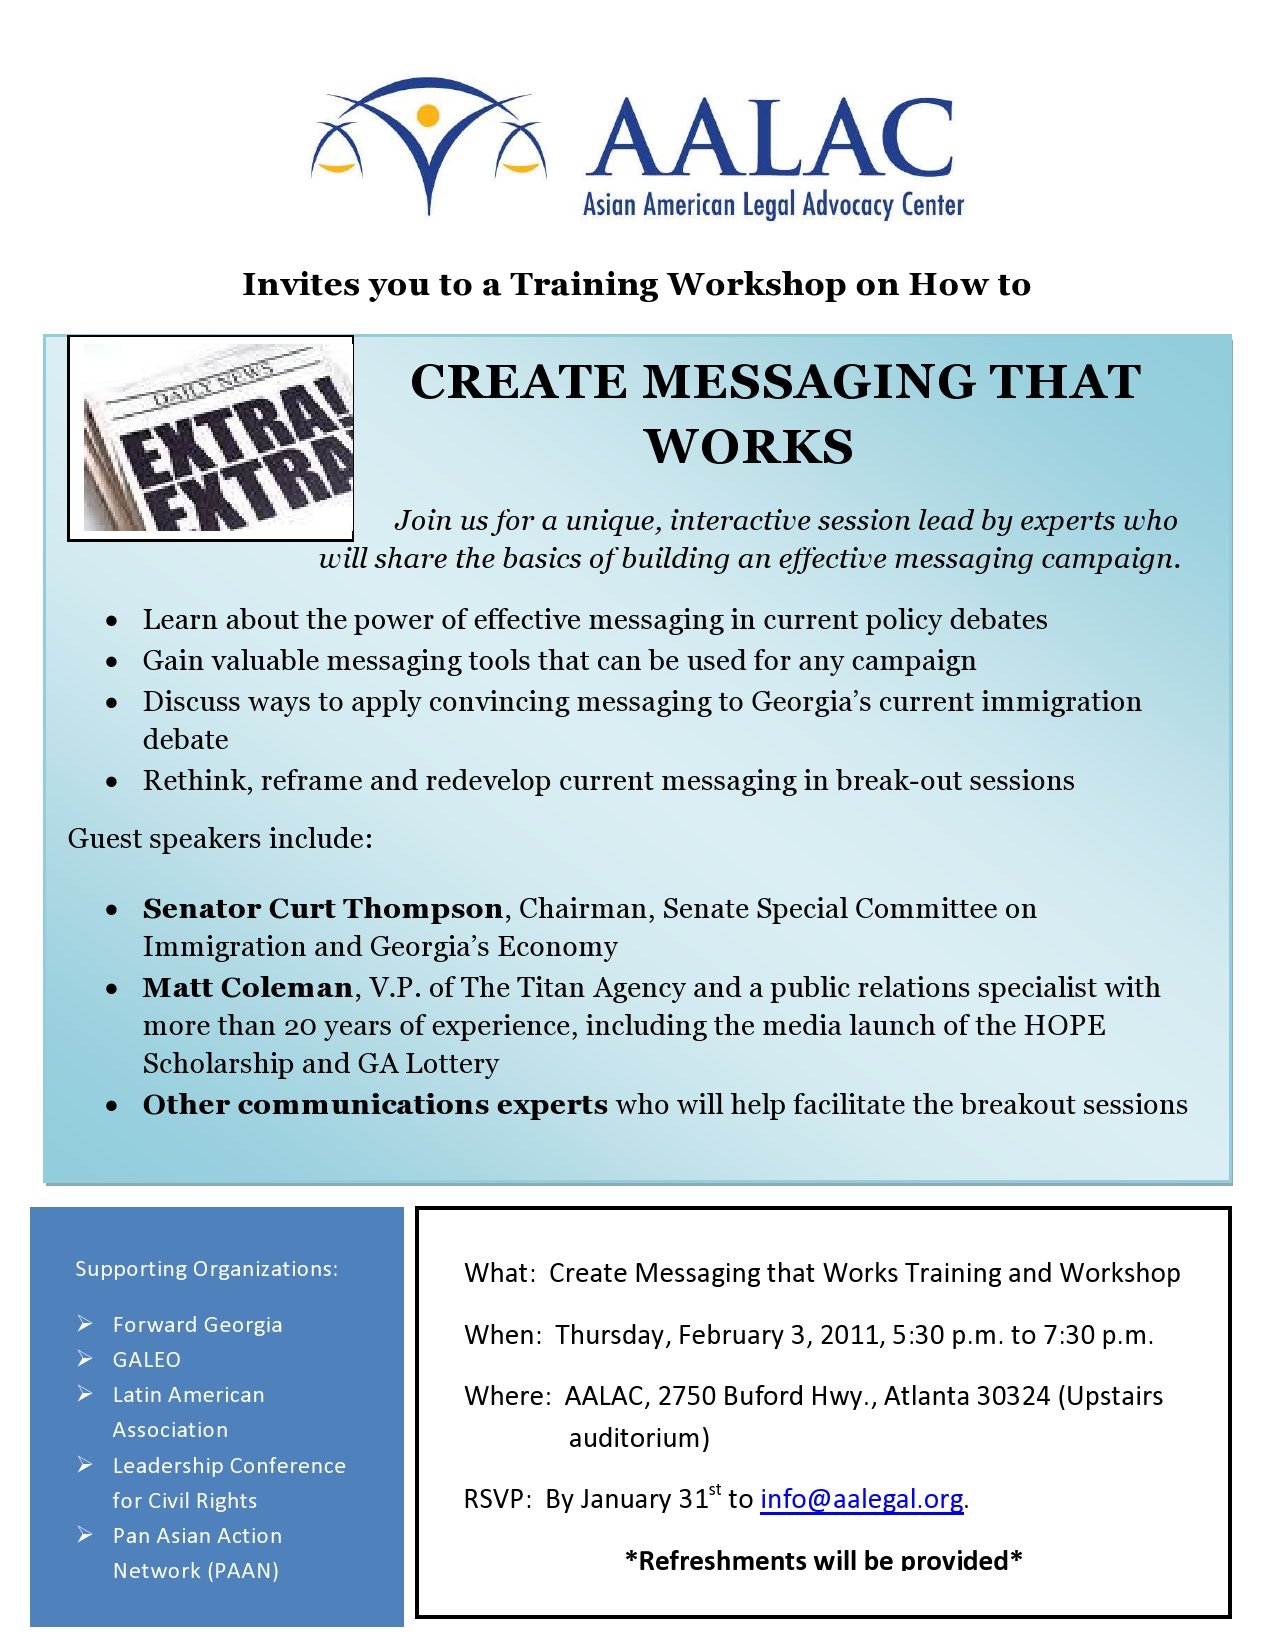 AALAC Feb.3 Training Workshop on How to Create Messaging that Works